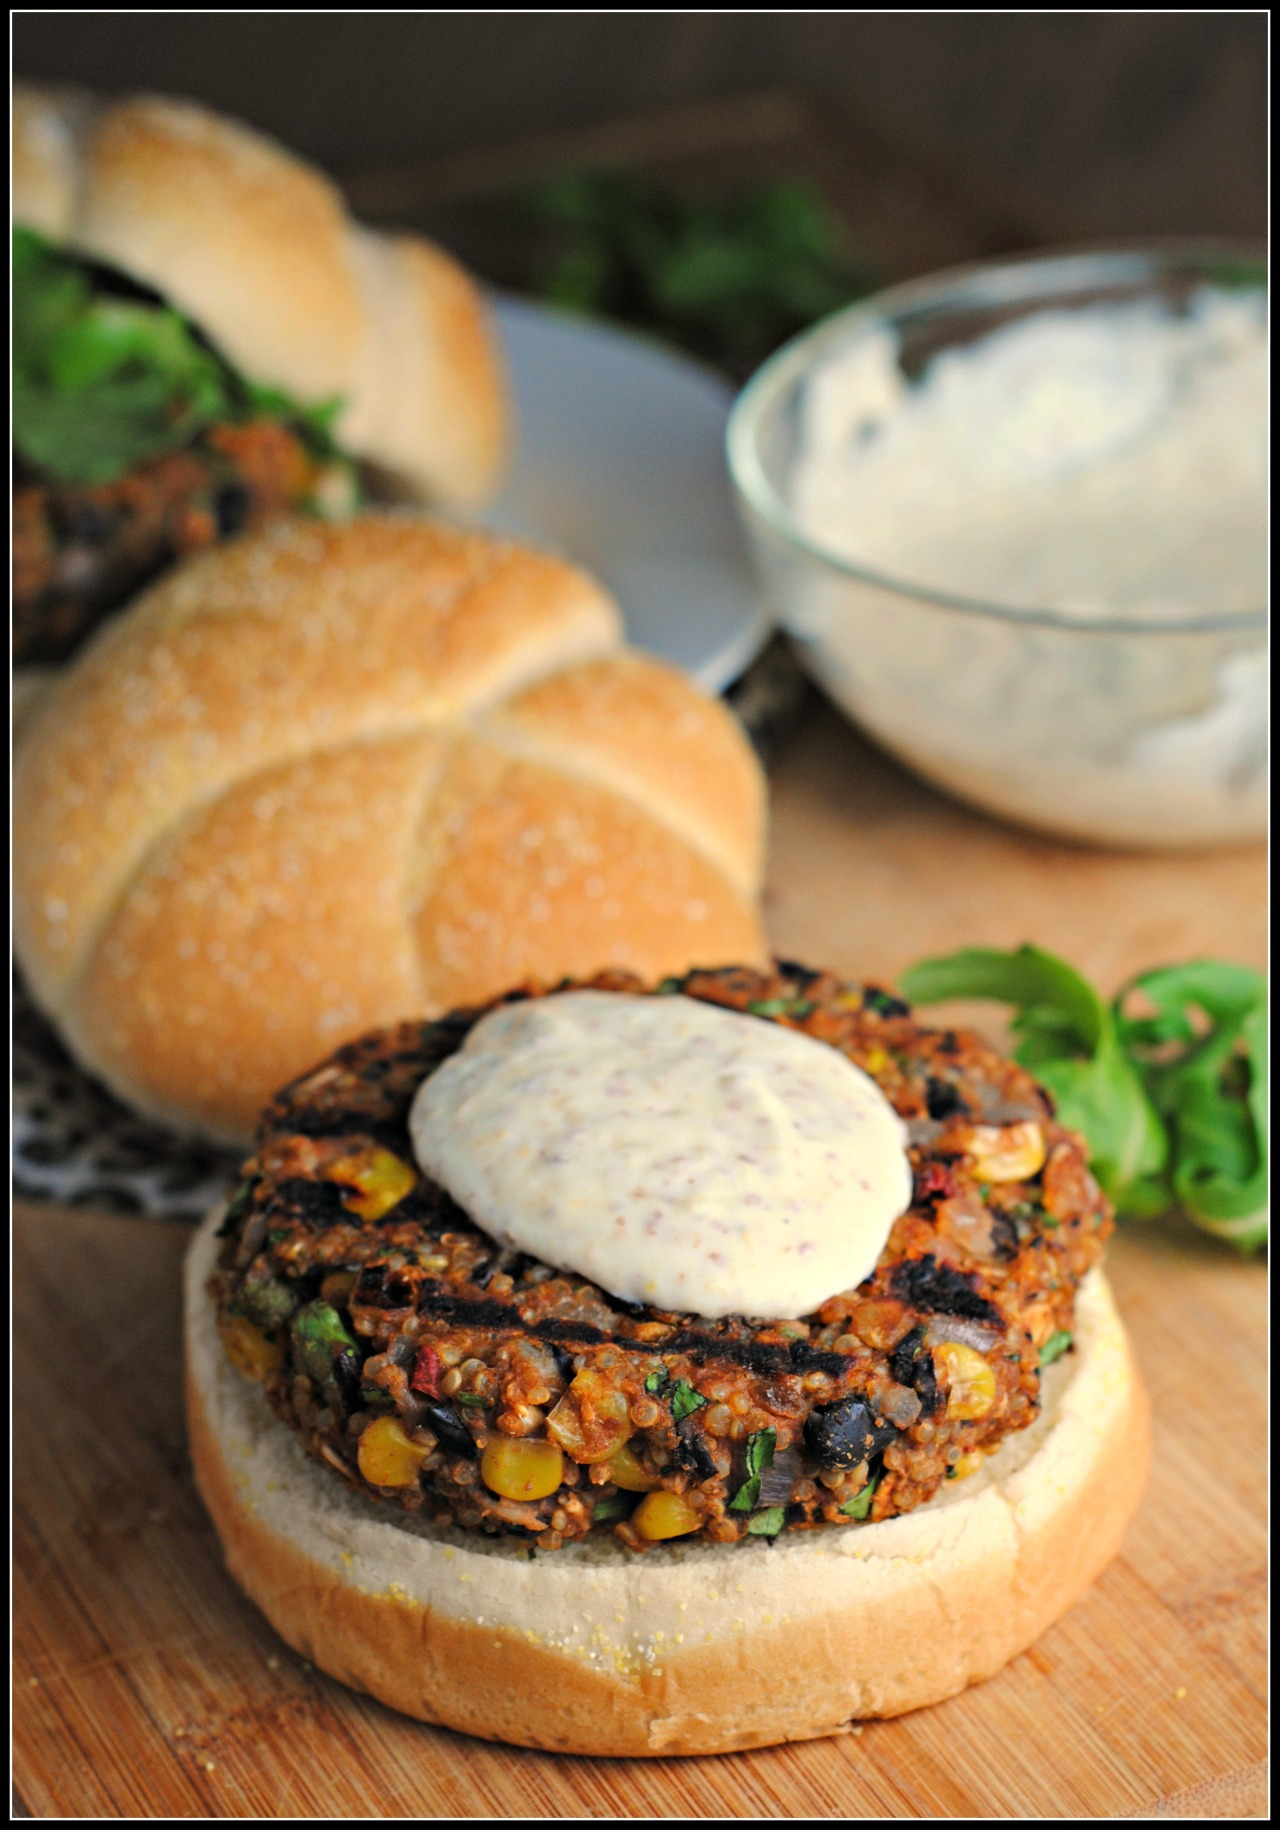 Black Bean & Quinoa Burger